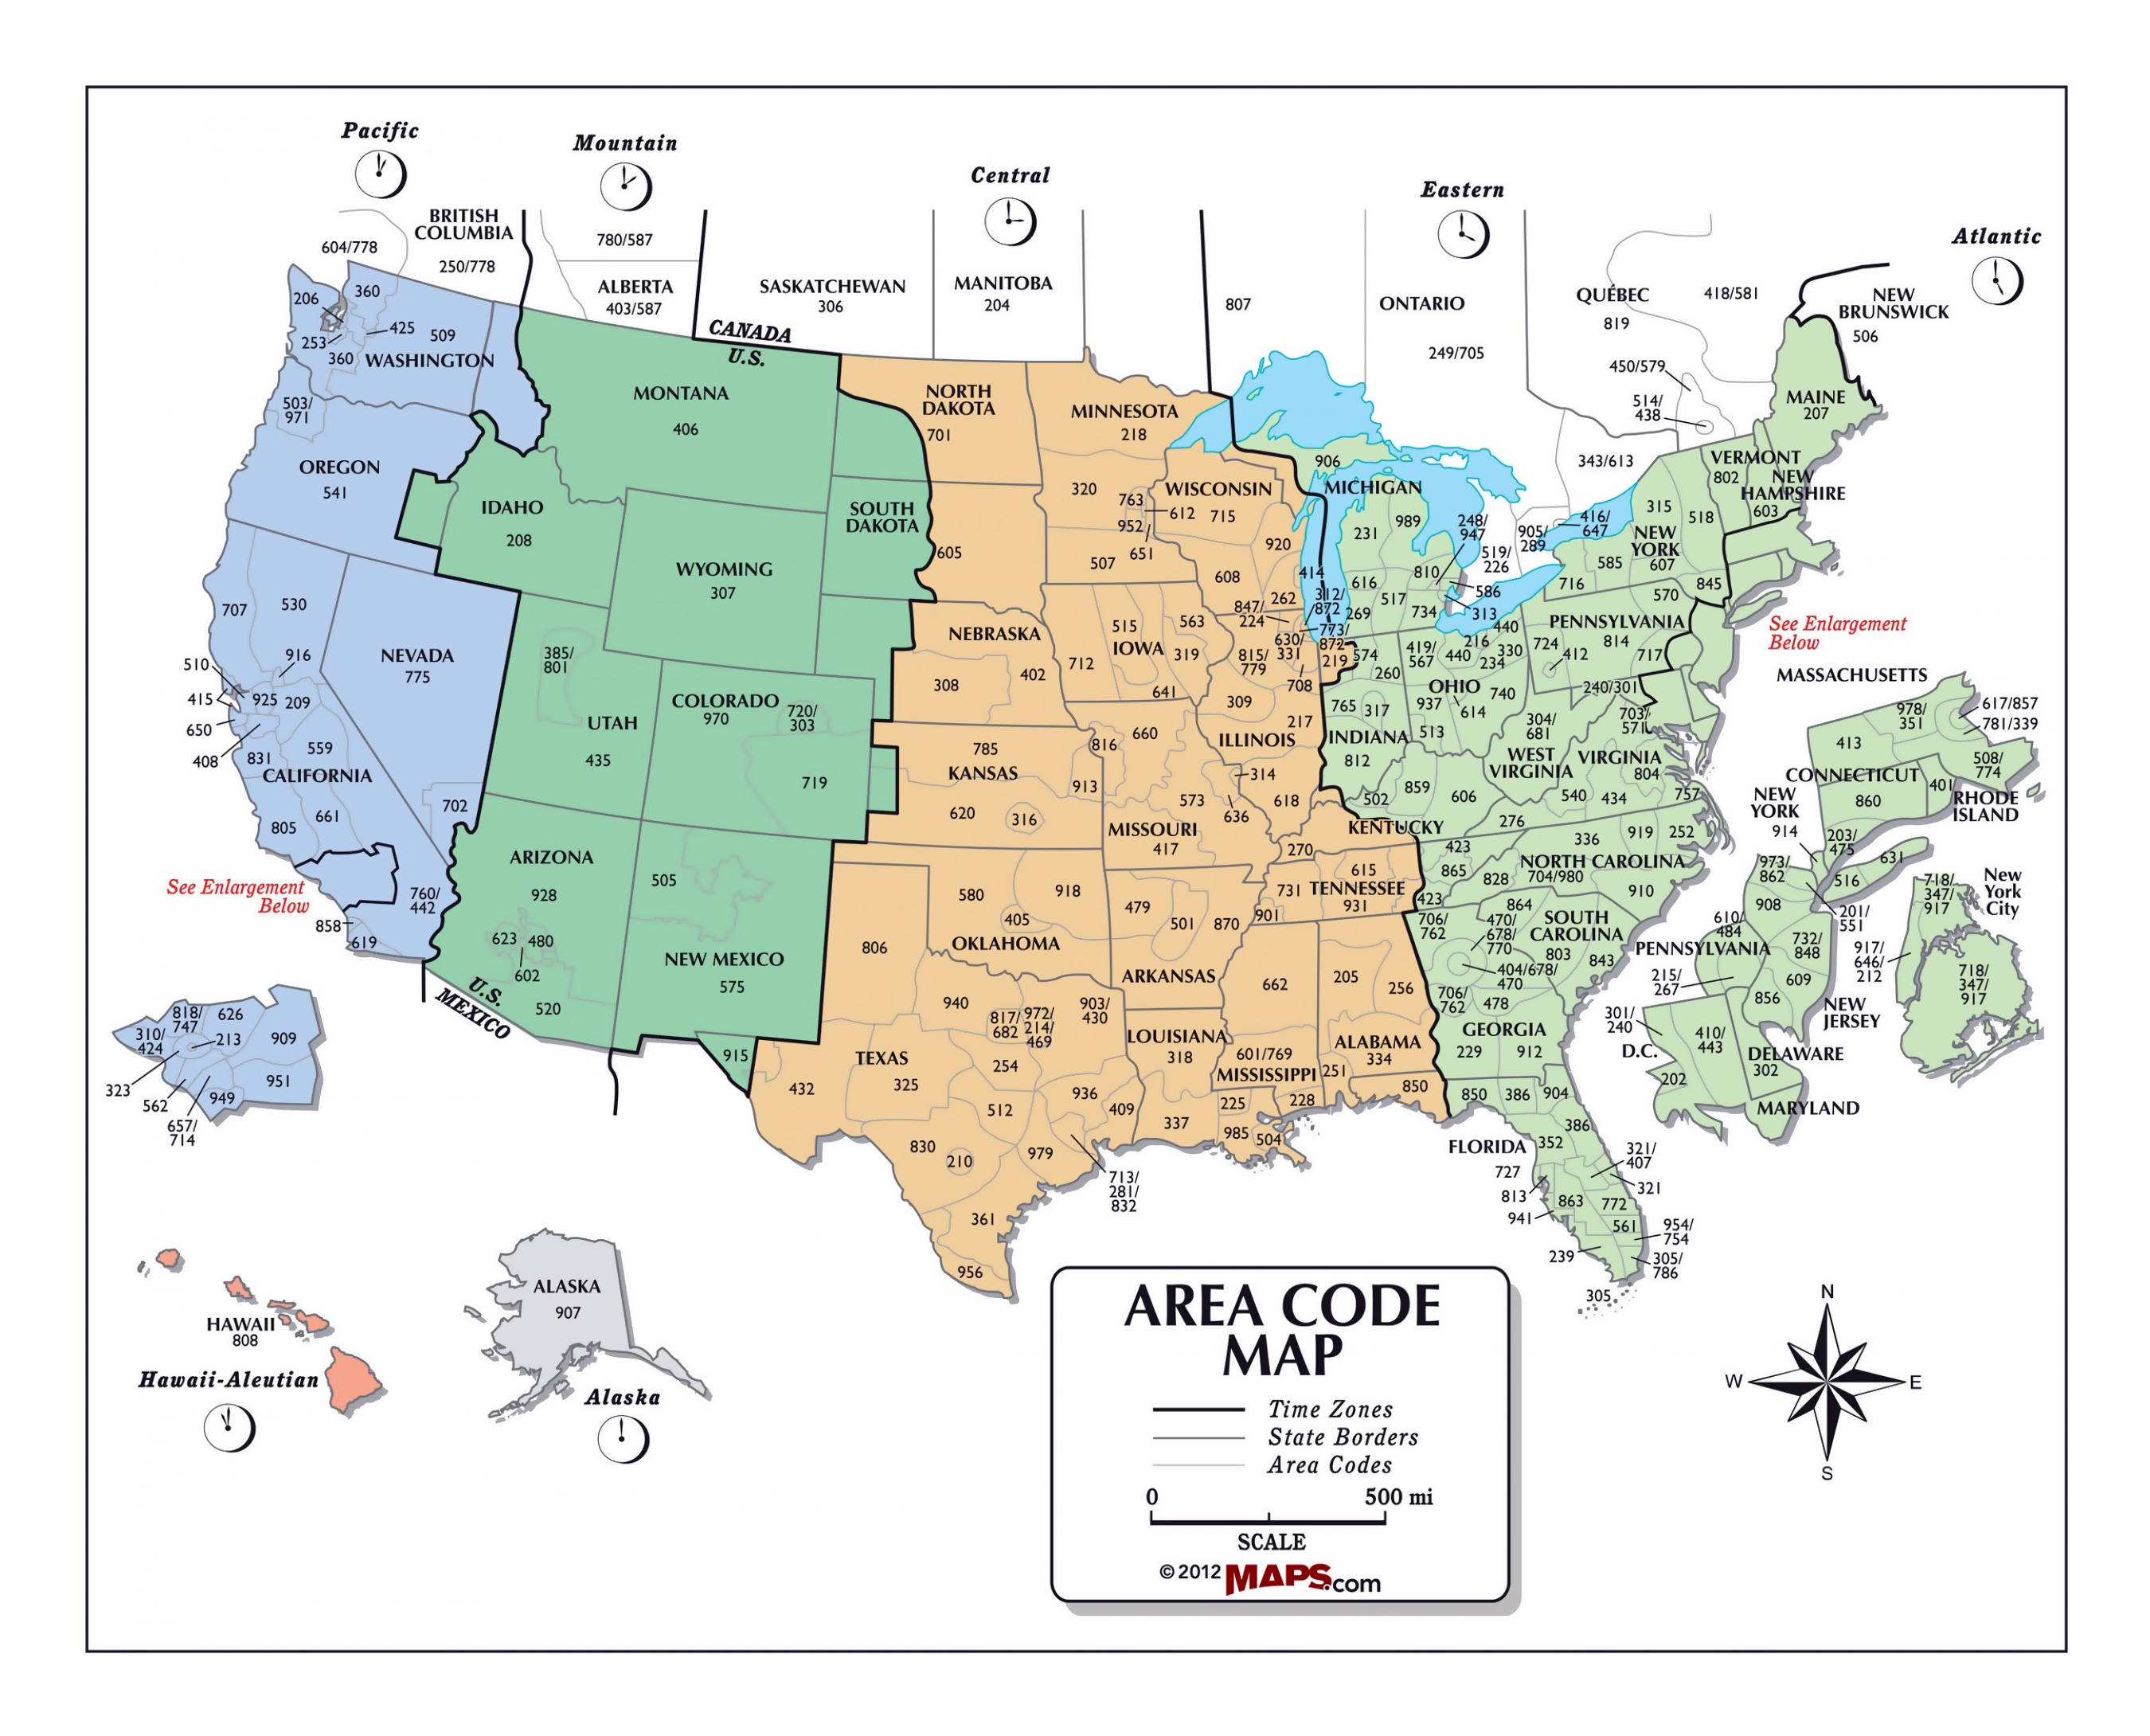 Large Area Code Map Of The USA USA United States Of America - Area codes usa map